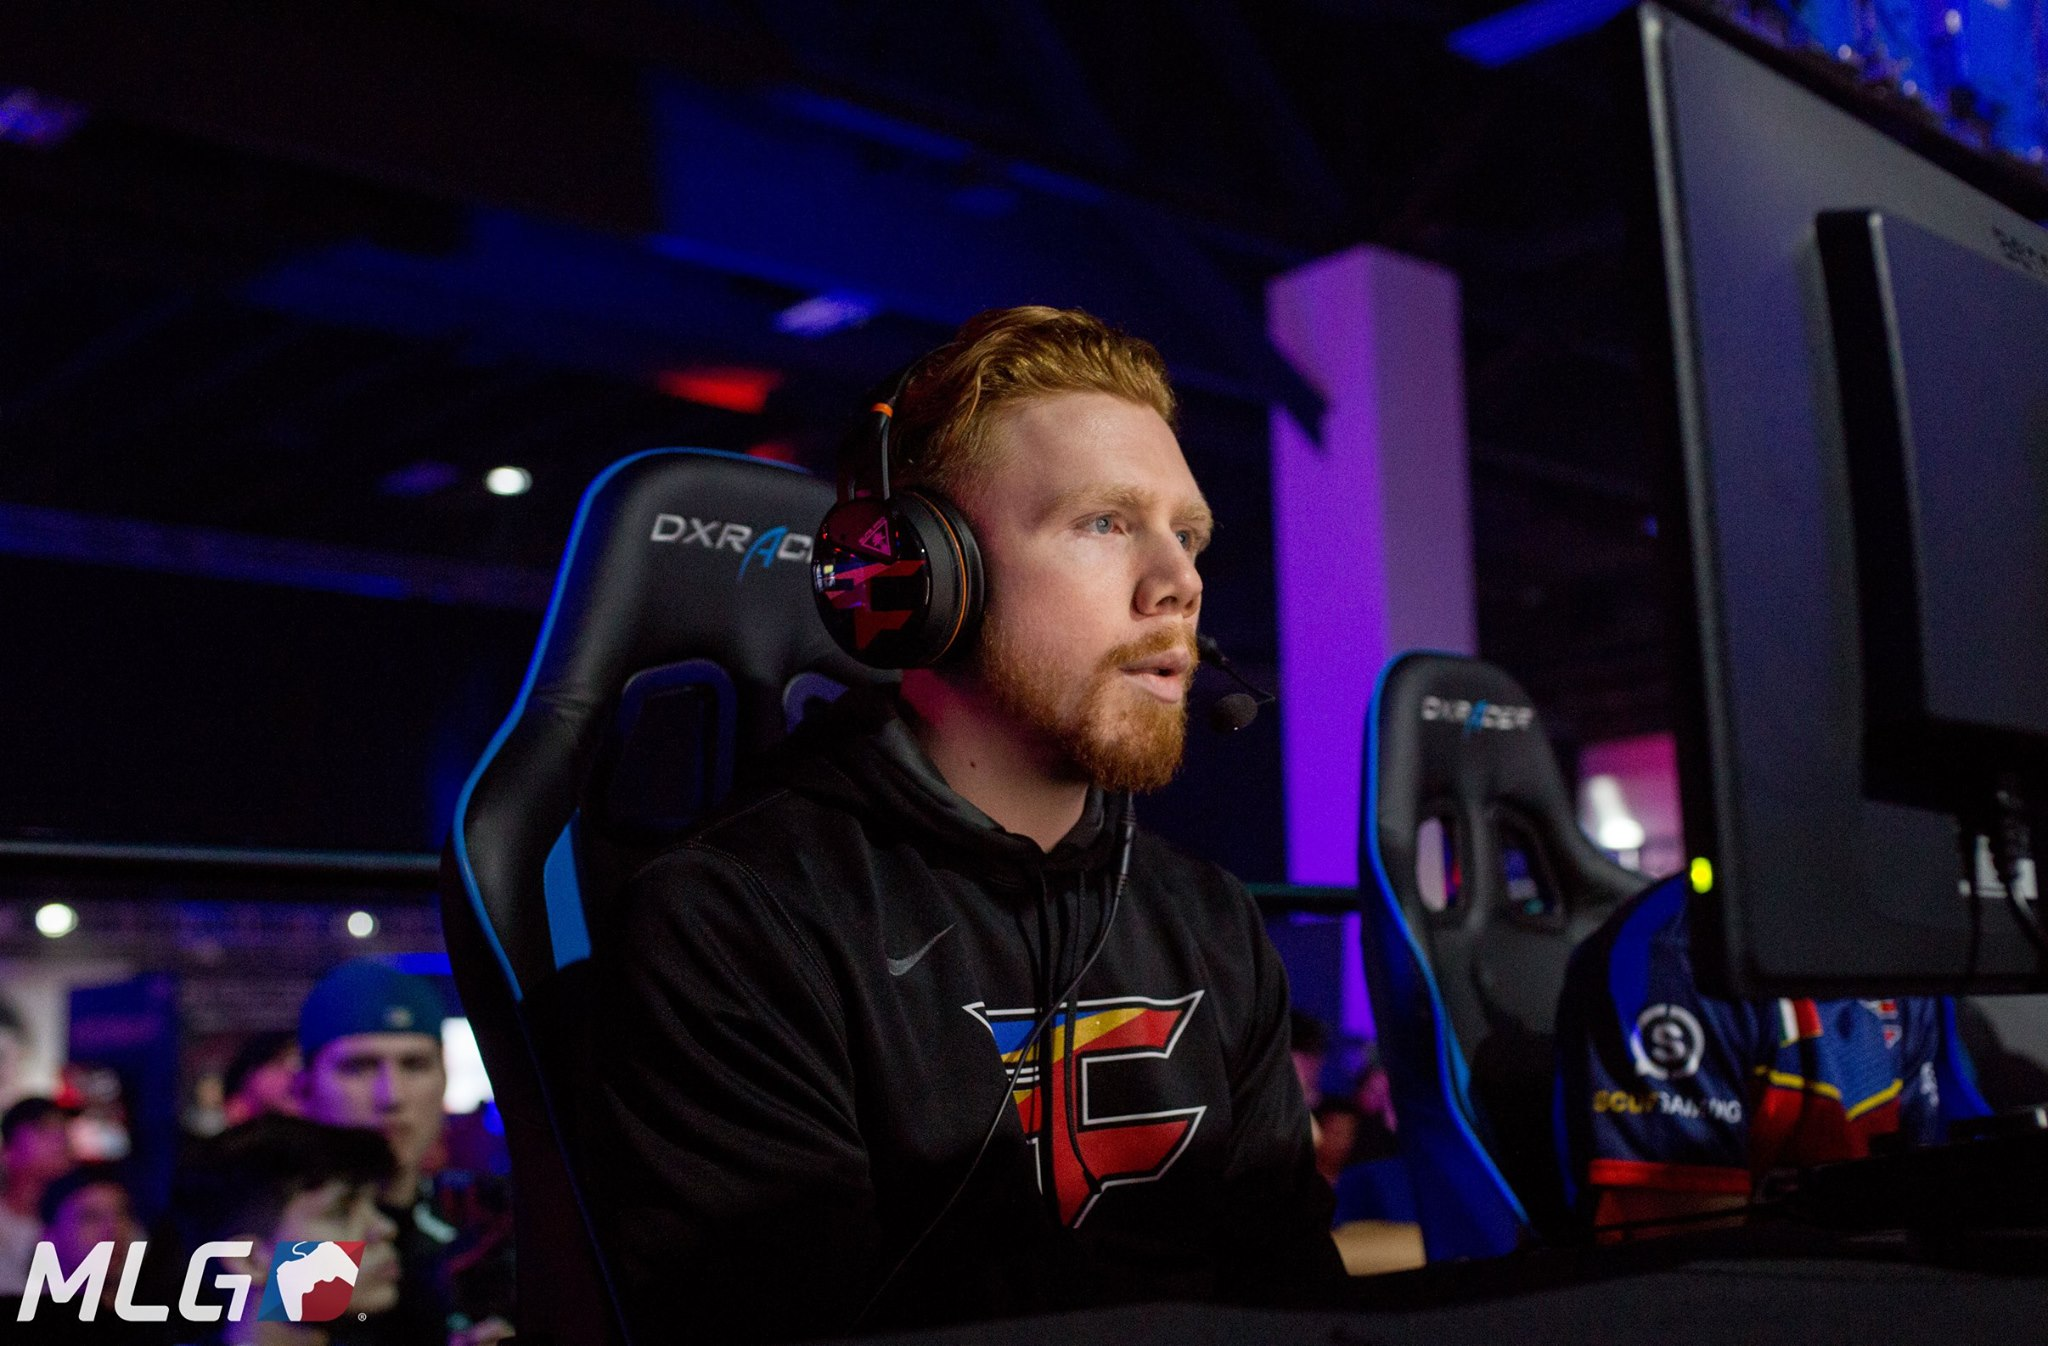 Enable at CWL Dallas Open. Image courtesy of MLG.